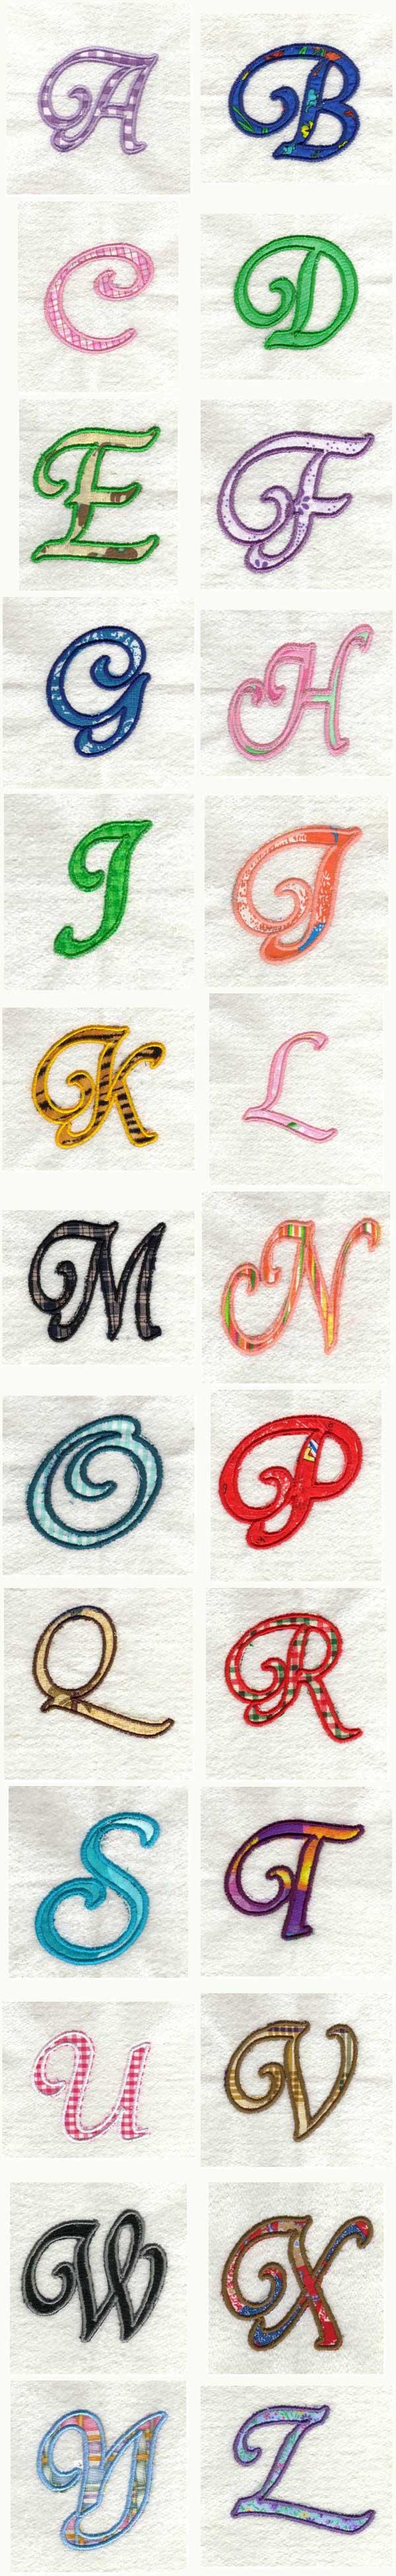 Applique Alphabet Embroidery Machine Design Details